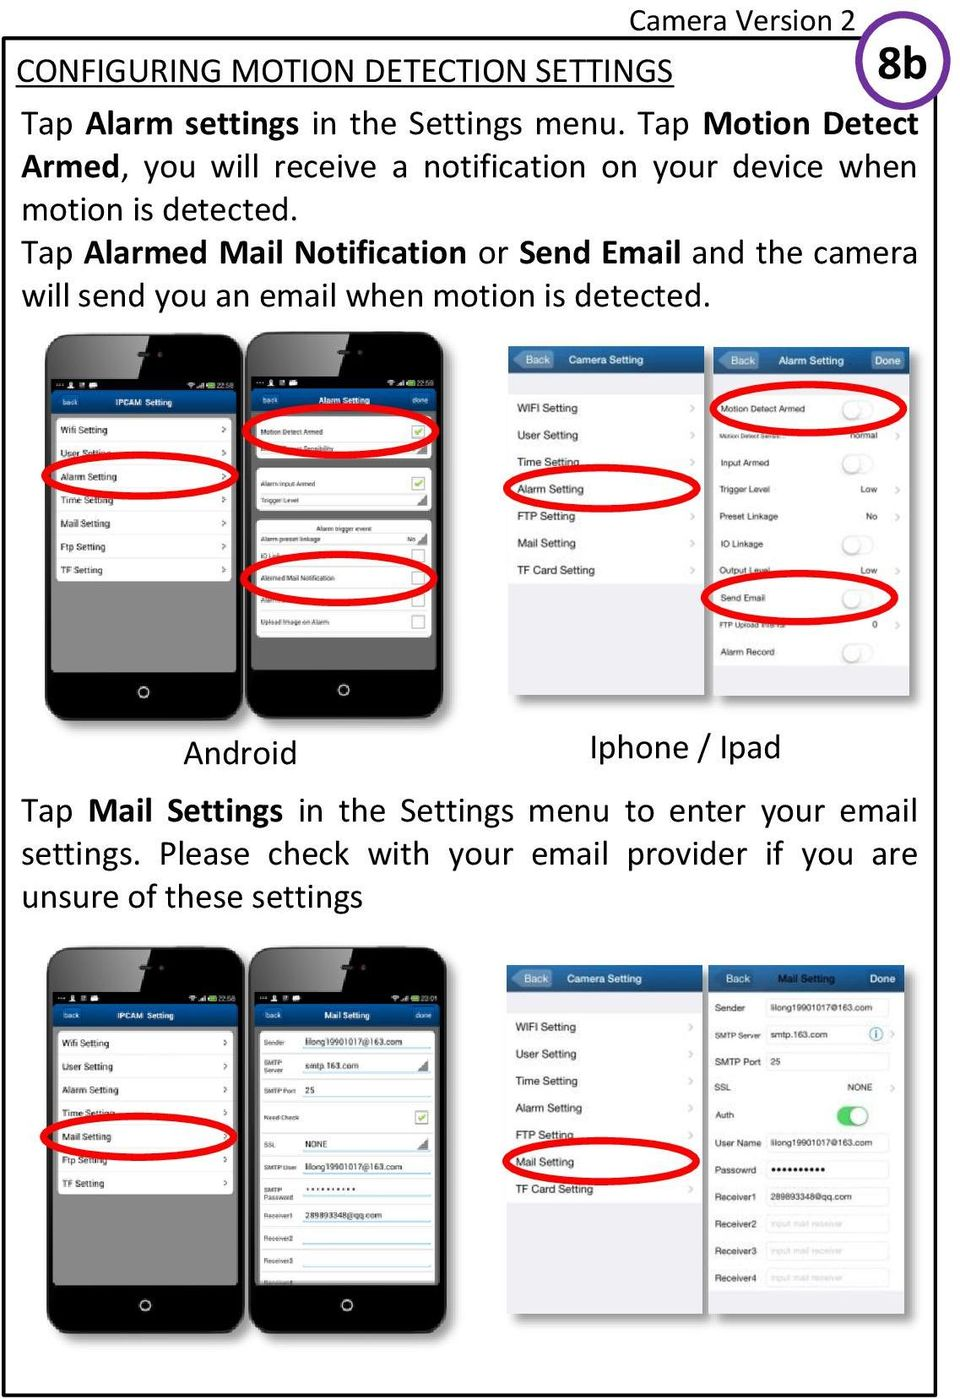 Tap Alarmed Mail Notification or Send Email and the camera will send you an email when motion is detected.